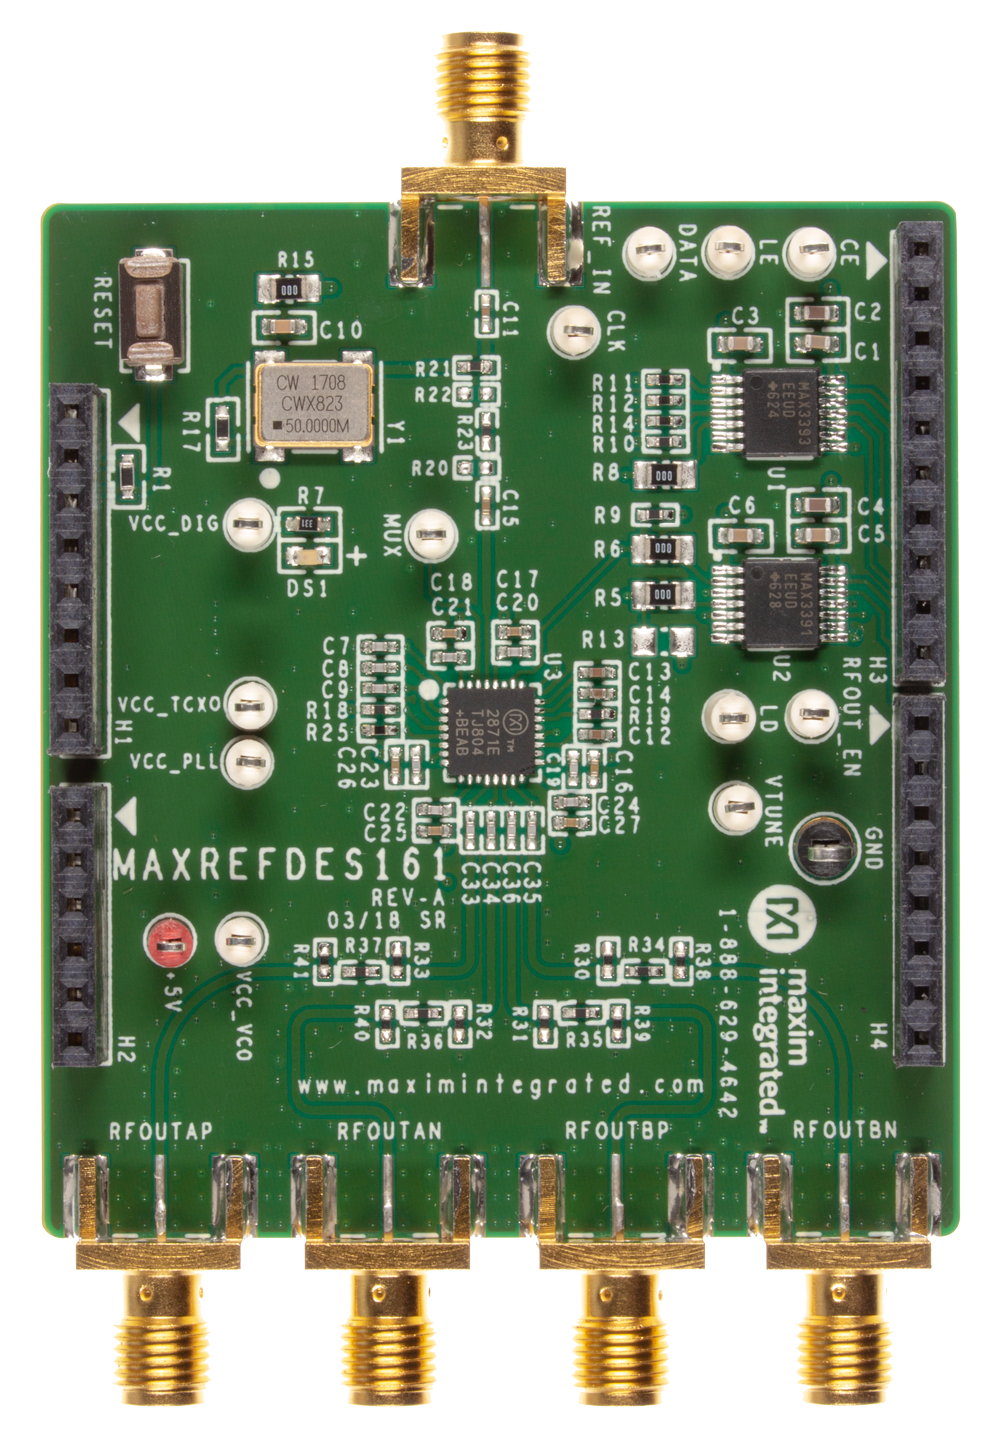 Maxrefdes161 Frequency Synthesizer Shield Maxim Circuit Diaghram Of Low System Board